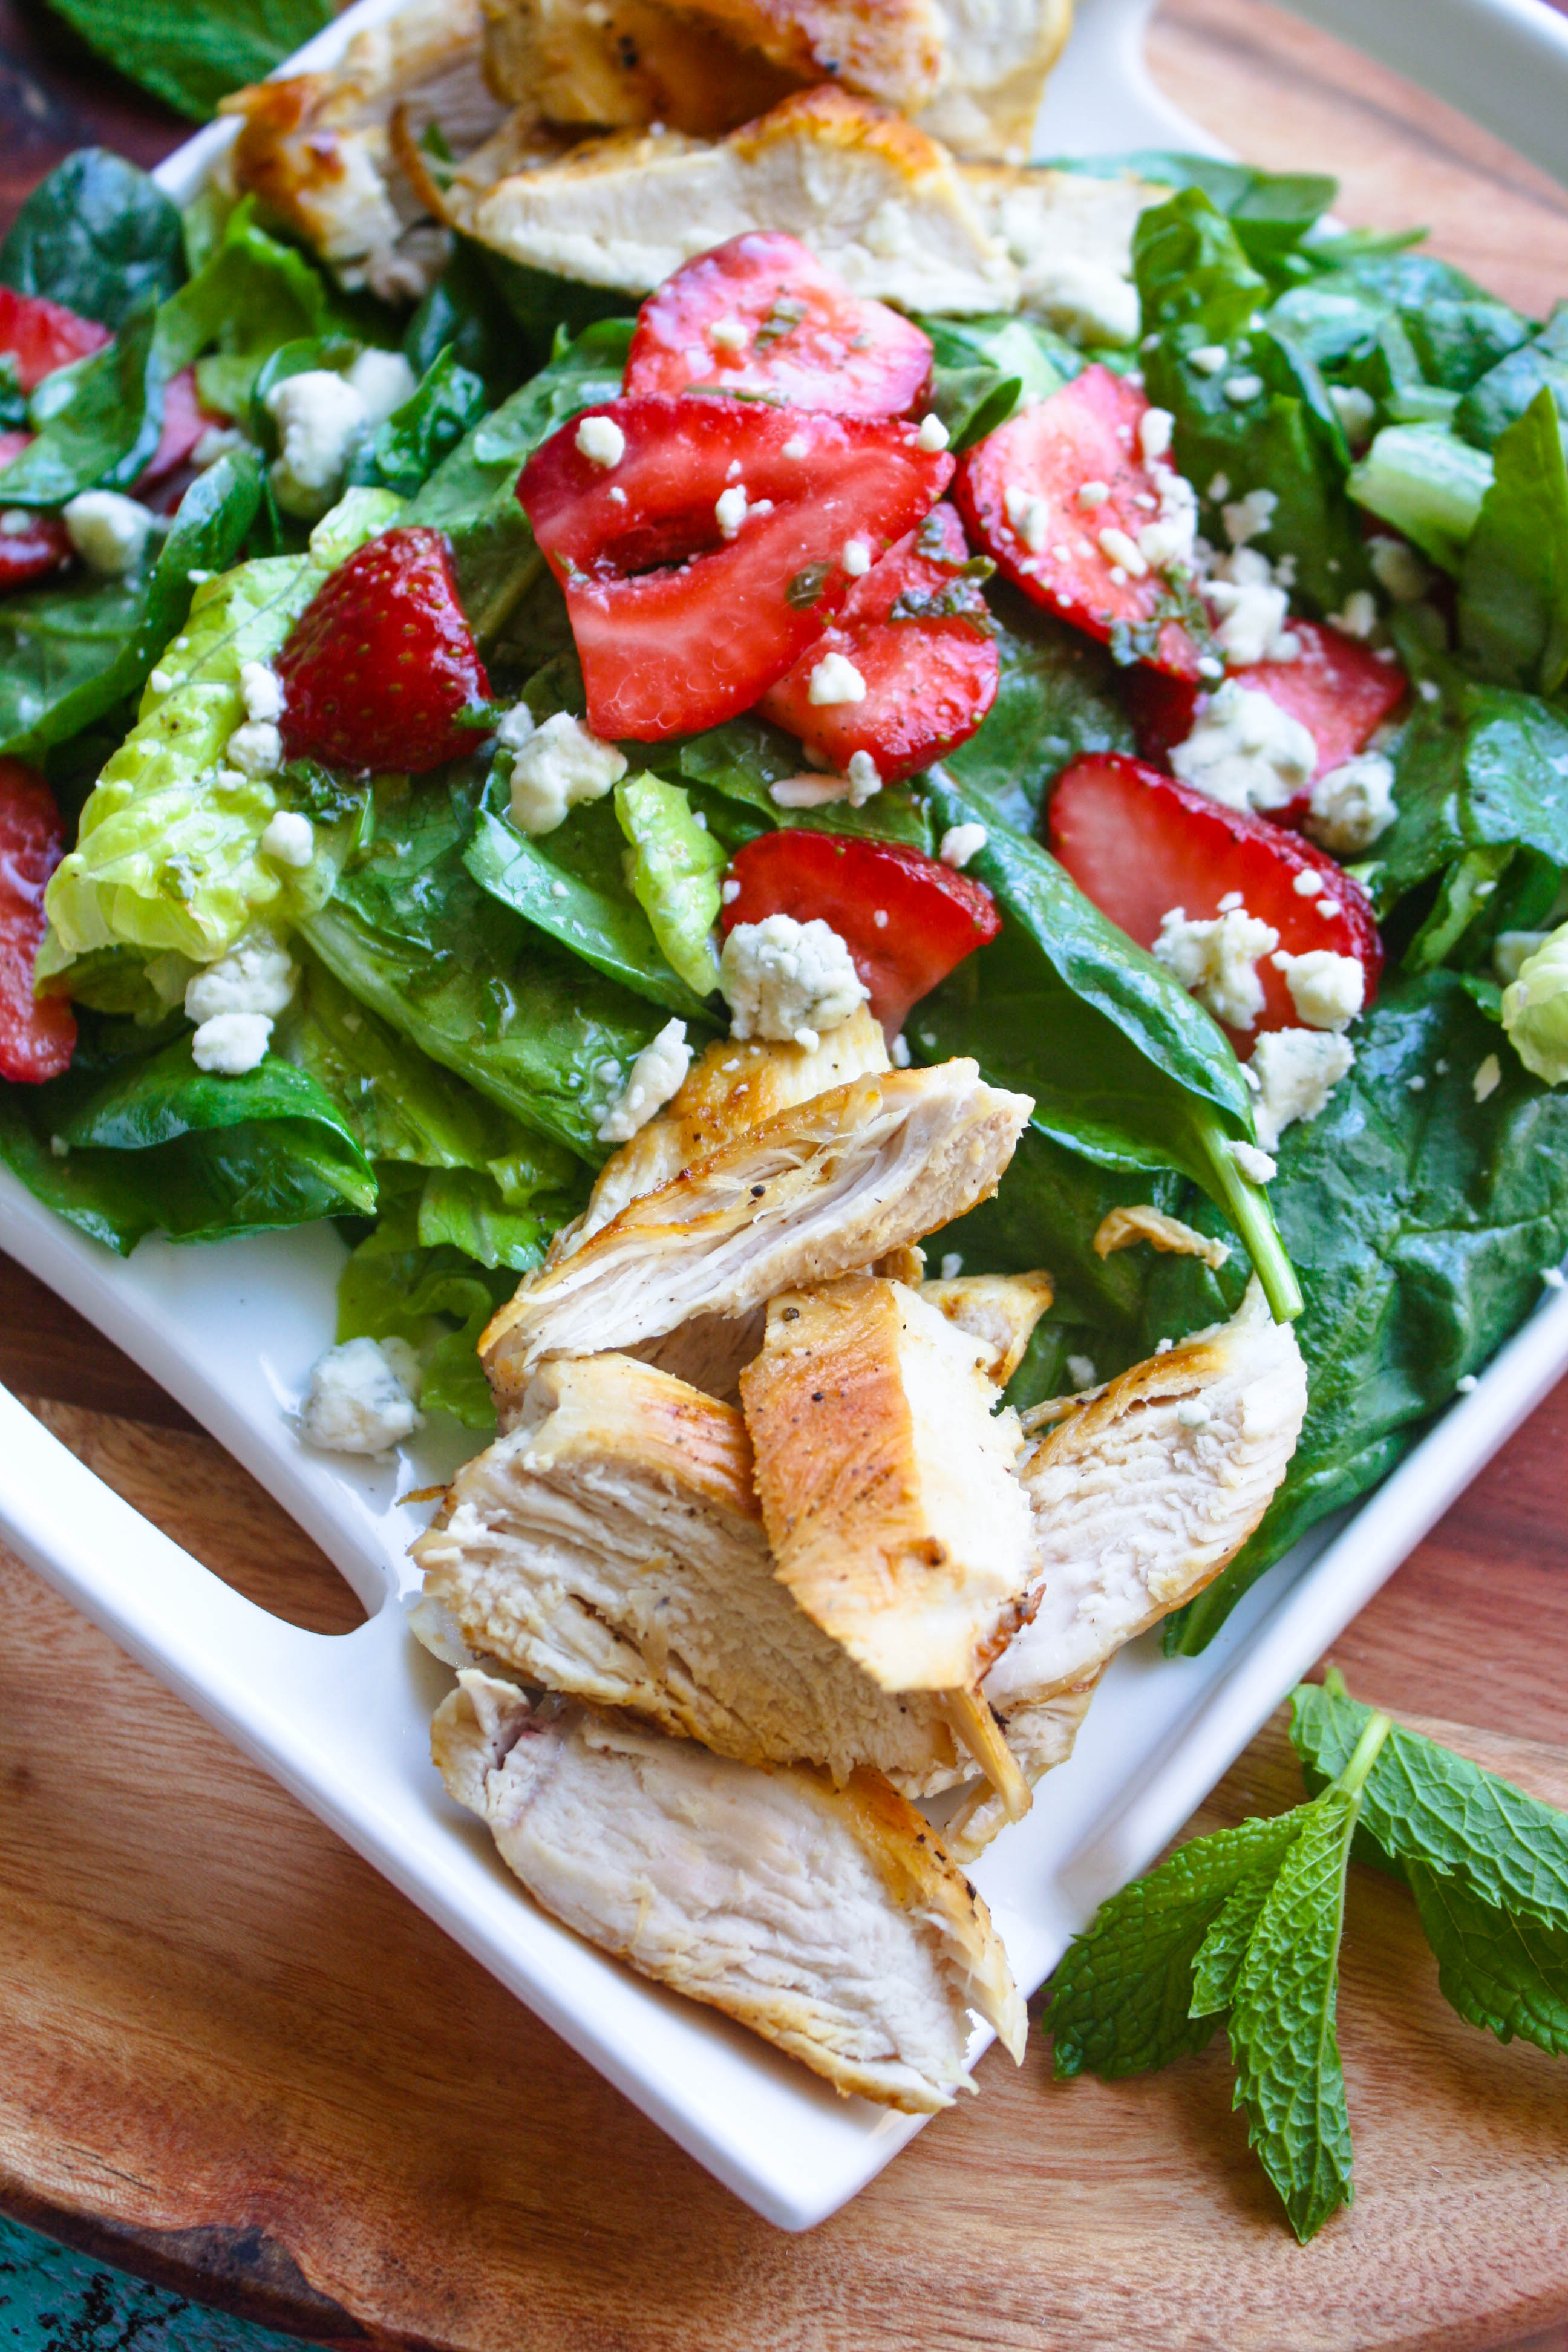 Chicken Salad with Strawberries and Honey-Lemon Mint Dressing is a sweet, satisfying meal. You'll love the flavors and colors in this easy-to-make, hearty salad.